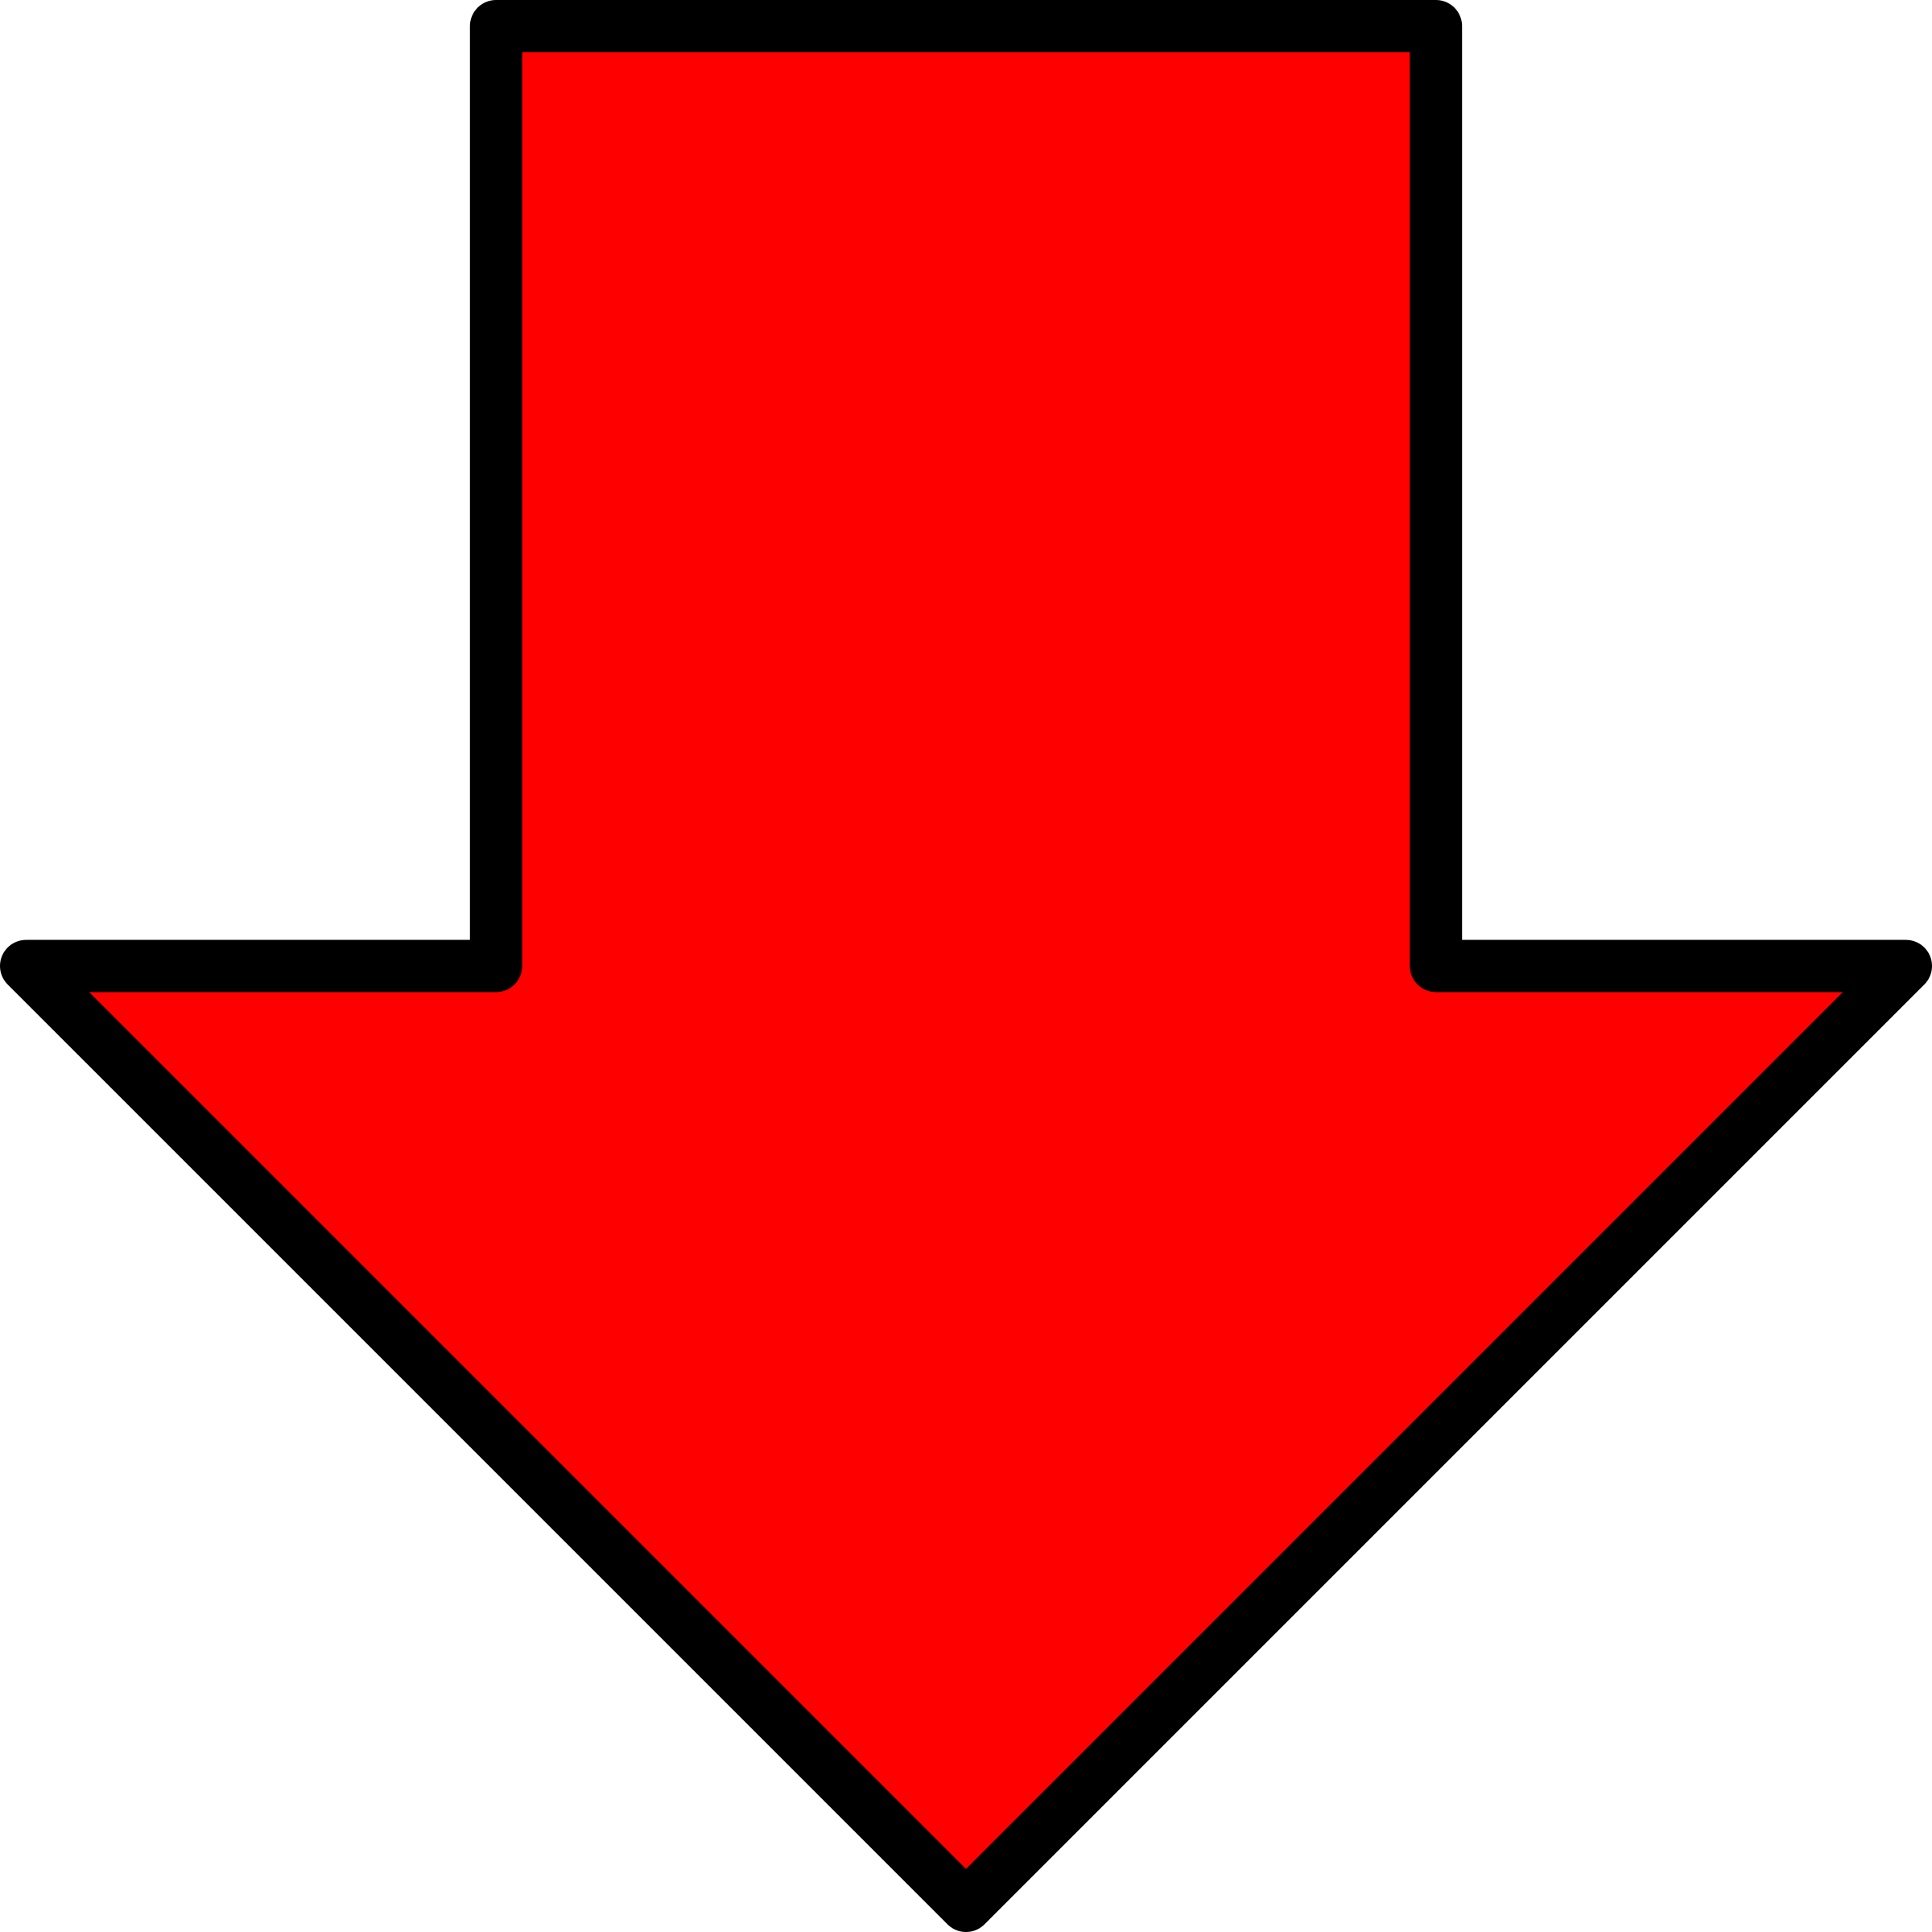 Red Arrow Down Icon Png image #6708 - Down Arrow PNG